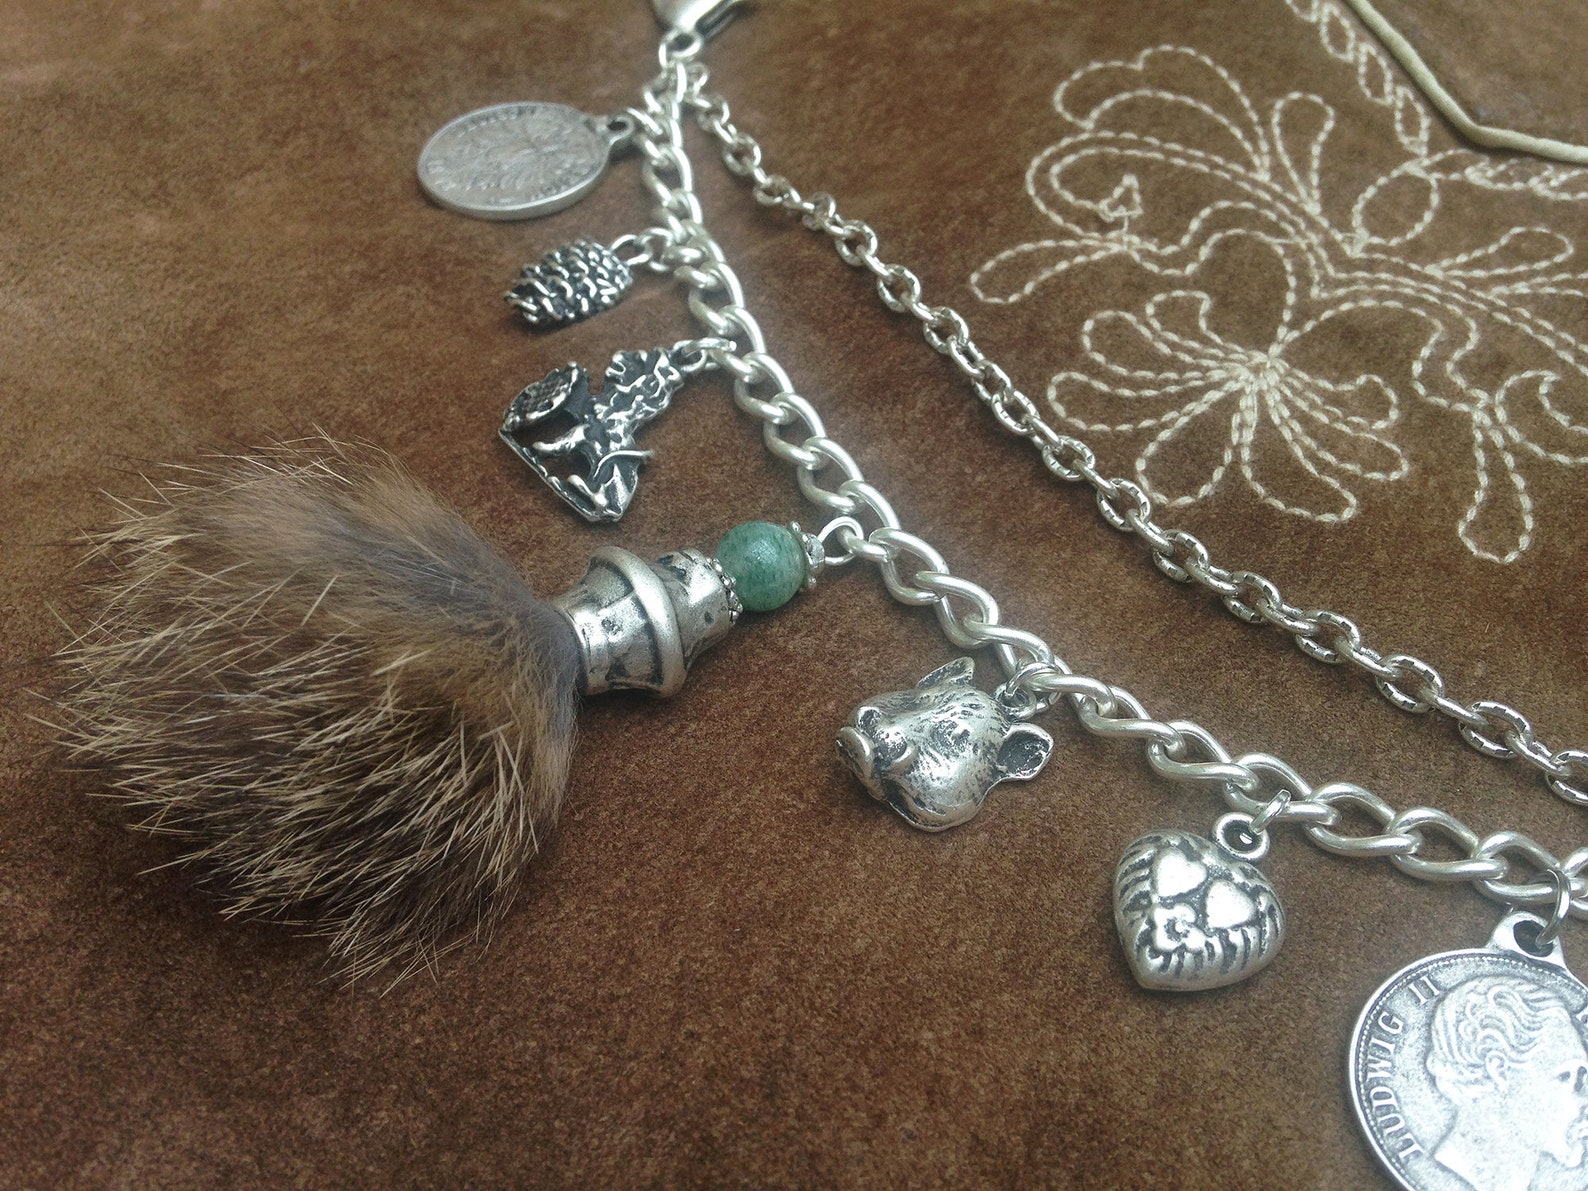 Bavarian Charivari chain, metall, antique silver colored, traditional Bavarian jewelry ,leather pants,